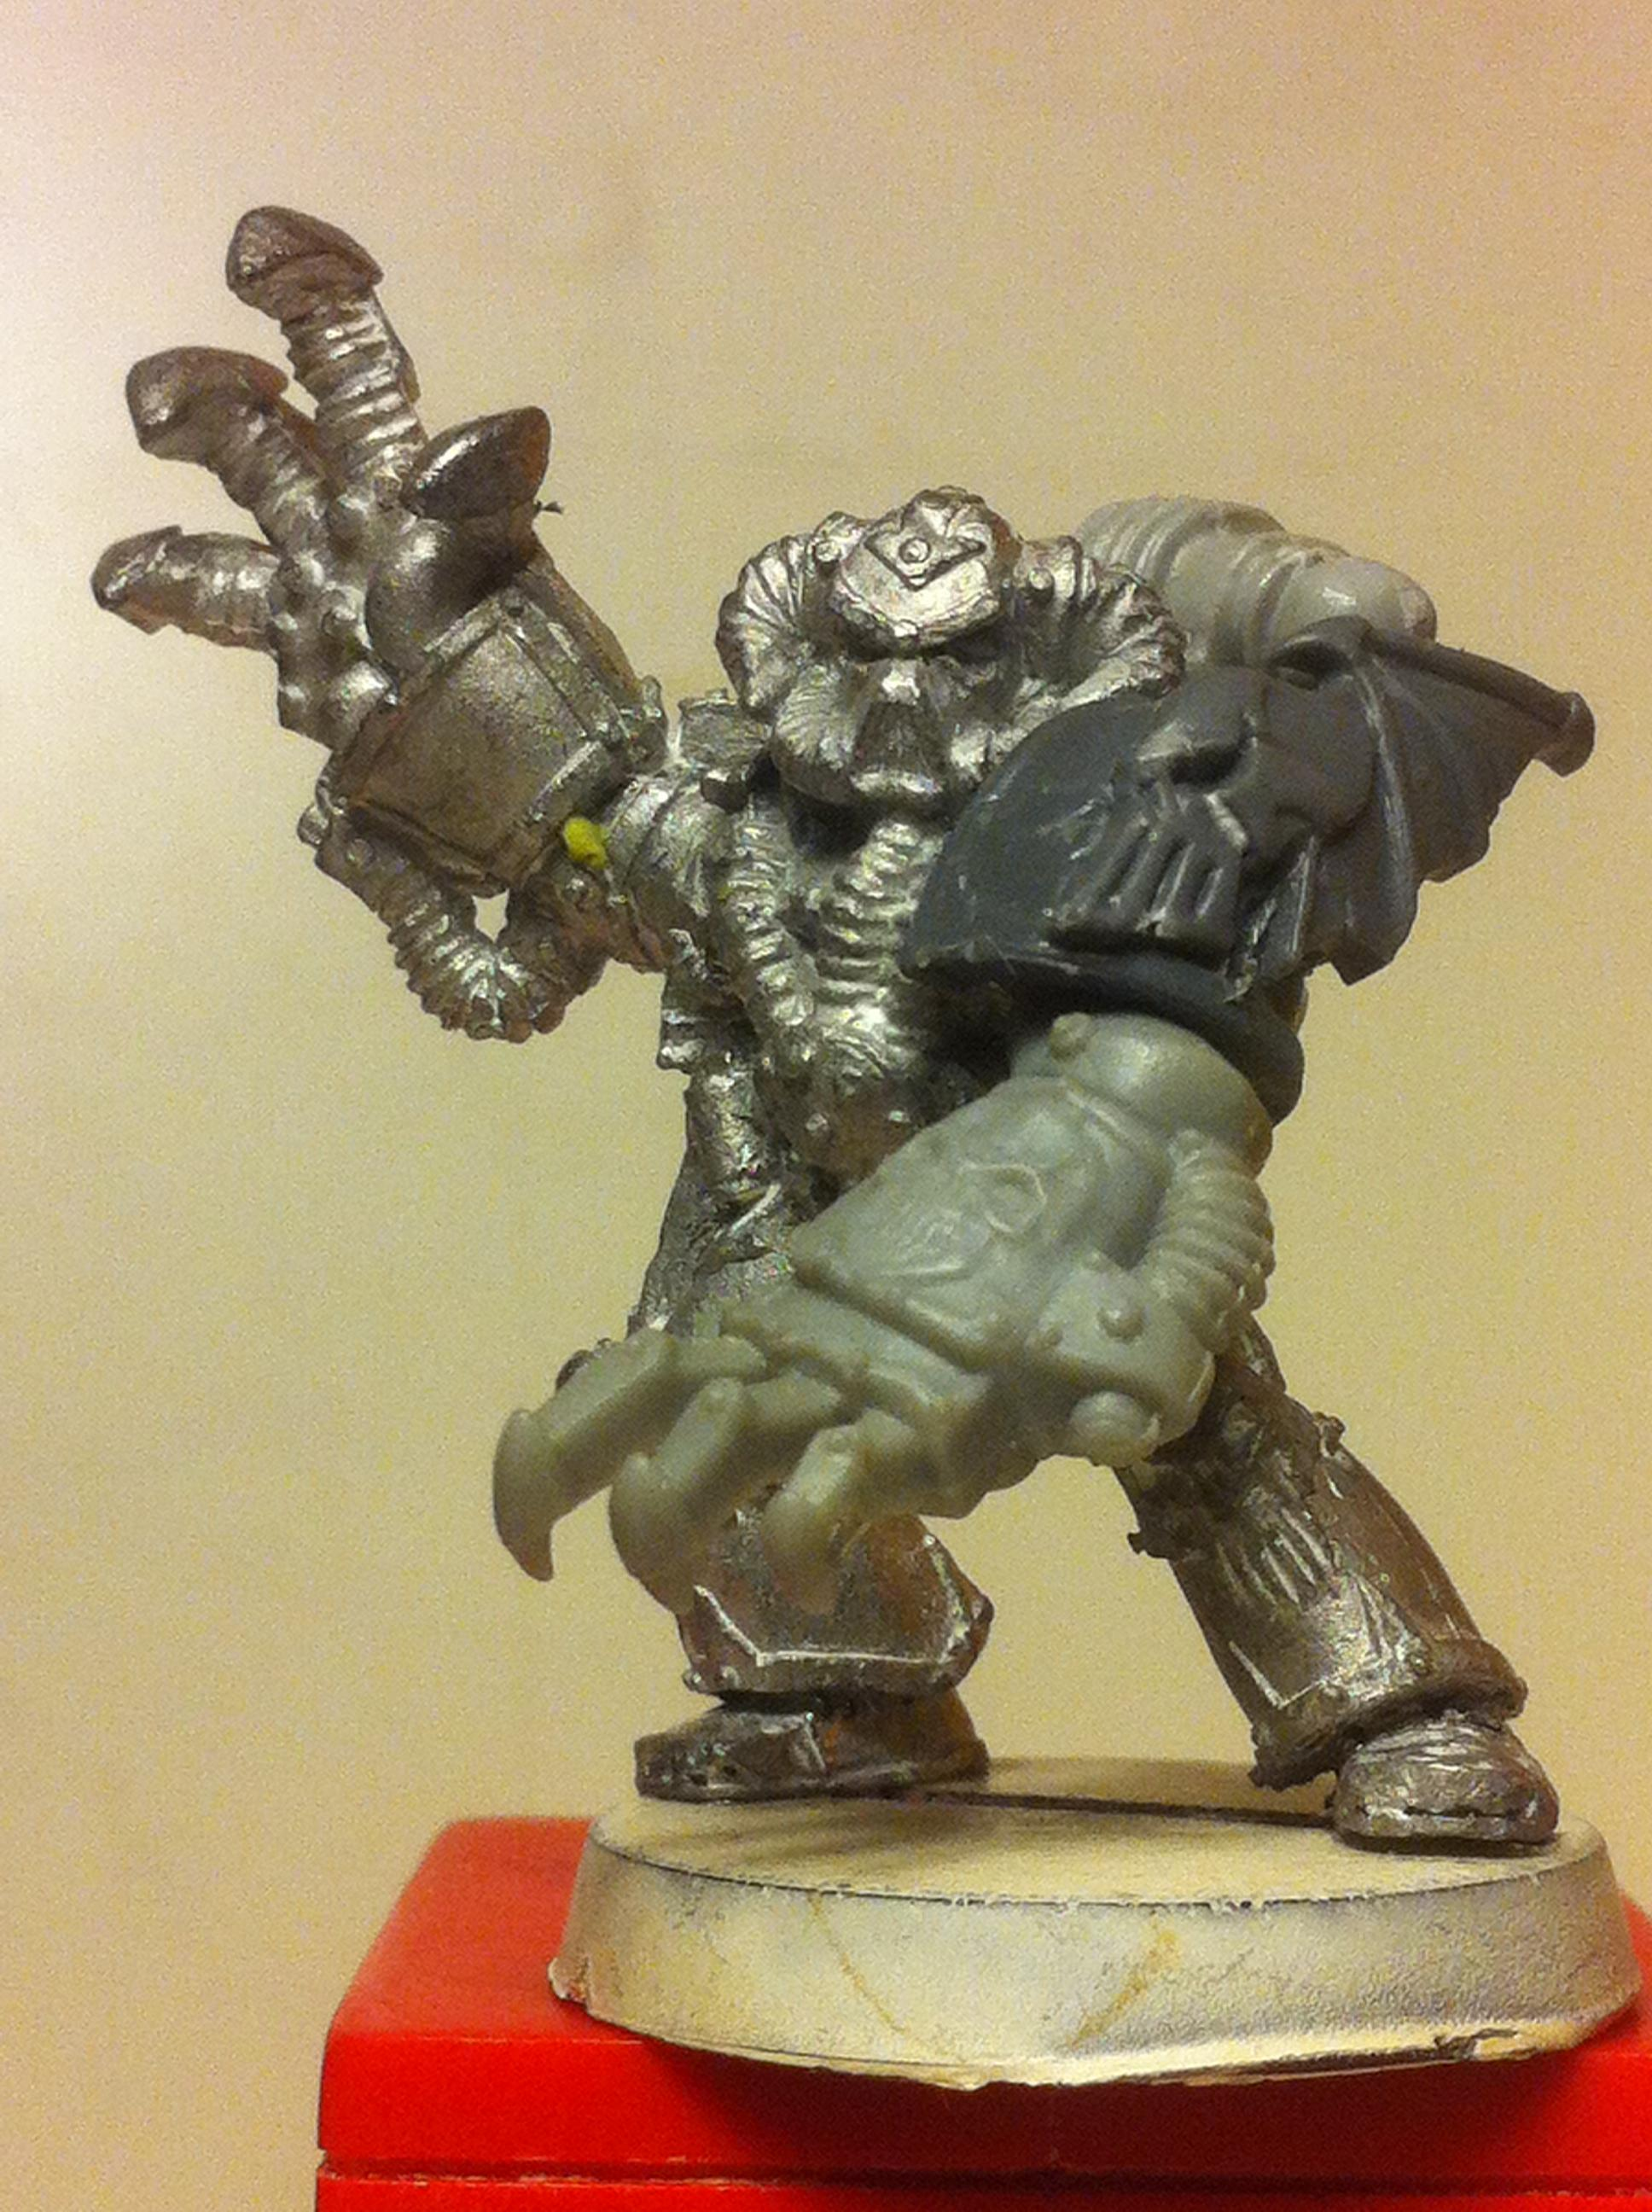 Chaos, Night Lords, Nurgle, Old, Oldschool, Plague, Rt, Space Marines